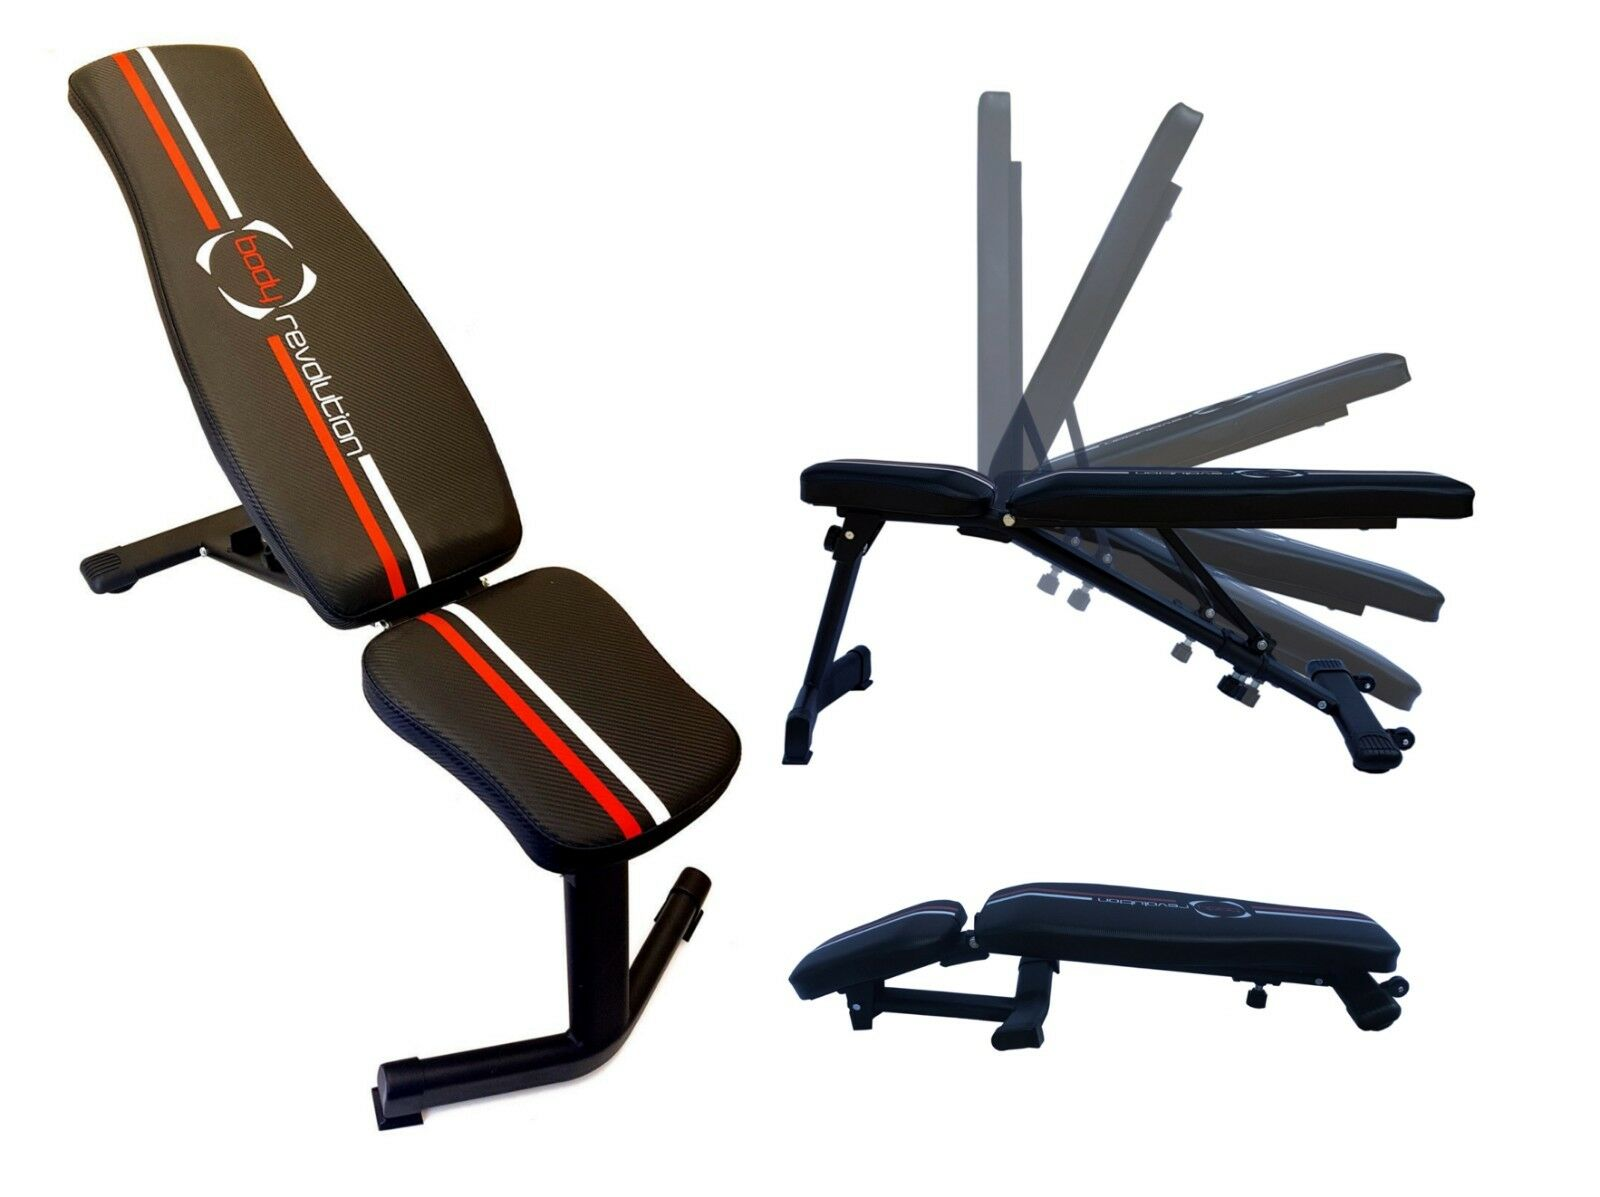 Adjustable Gym Bench For Barbell Weight Lifting Fitness Folding